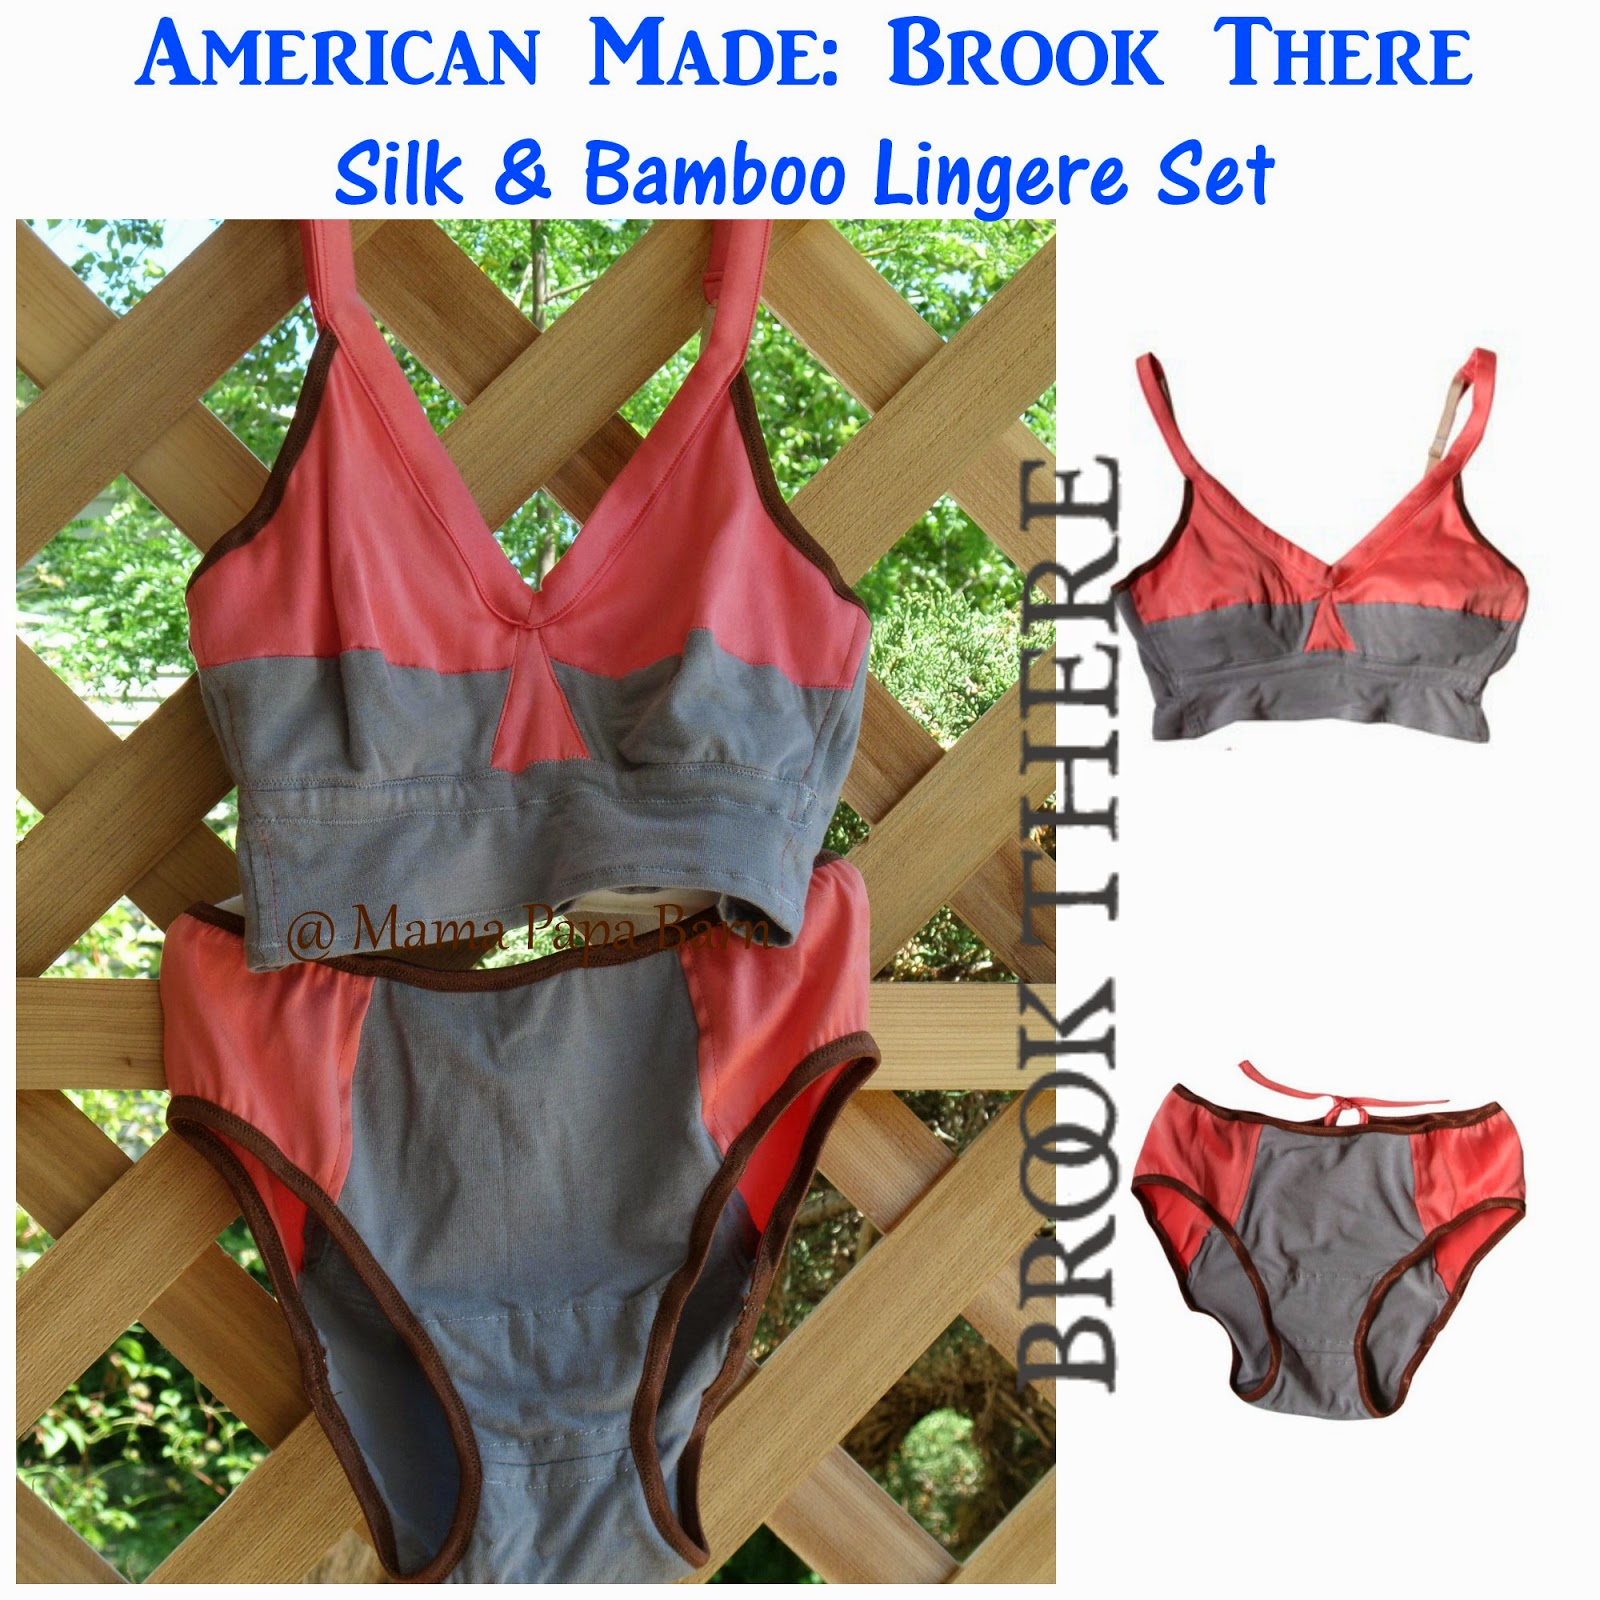 american made clothes, american made lingerie, matching underwear set, organic clothes, pin-up lingerie, retro style lingerie, sexy bra and panty set, silk lingerie, silk underwear